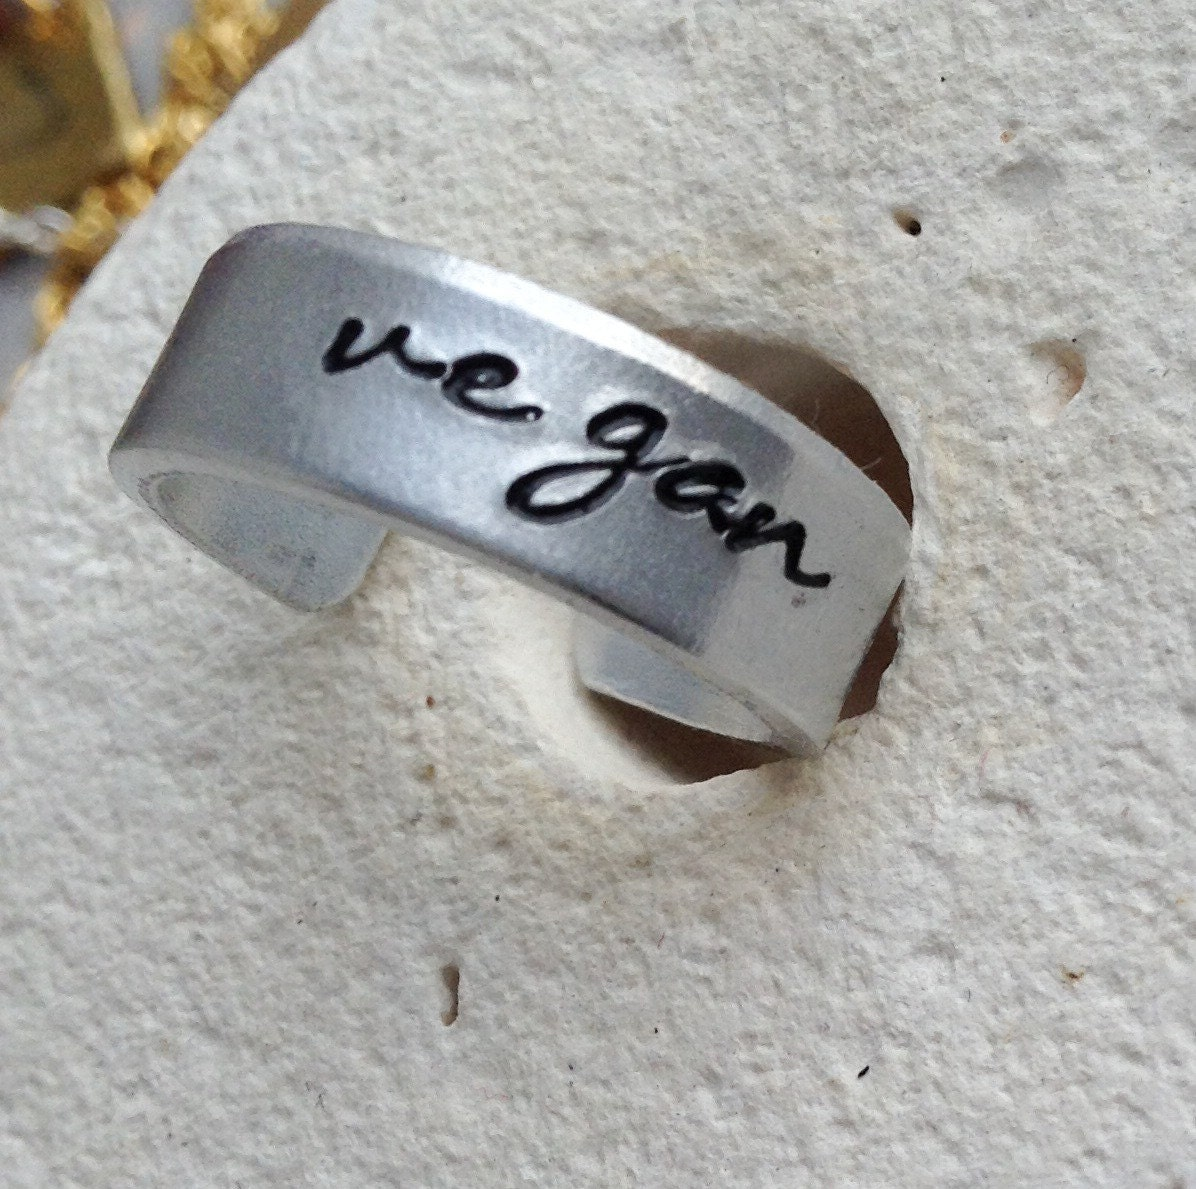 Vegan cuff ring - vegan jewellery - vegan jewelry - unisex vegan - for her - handstamped ring -  small medium and large.